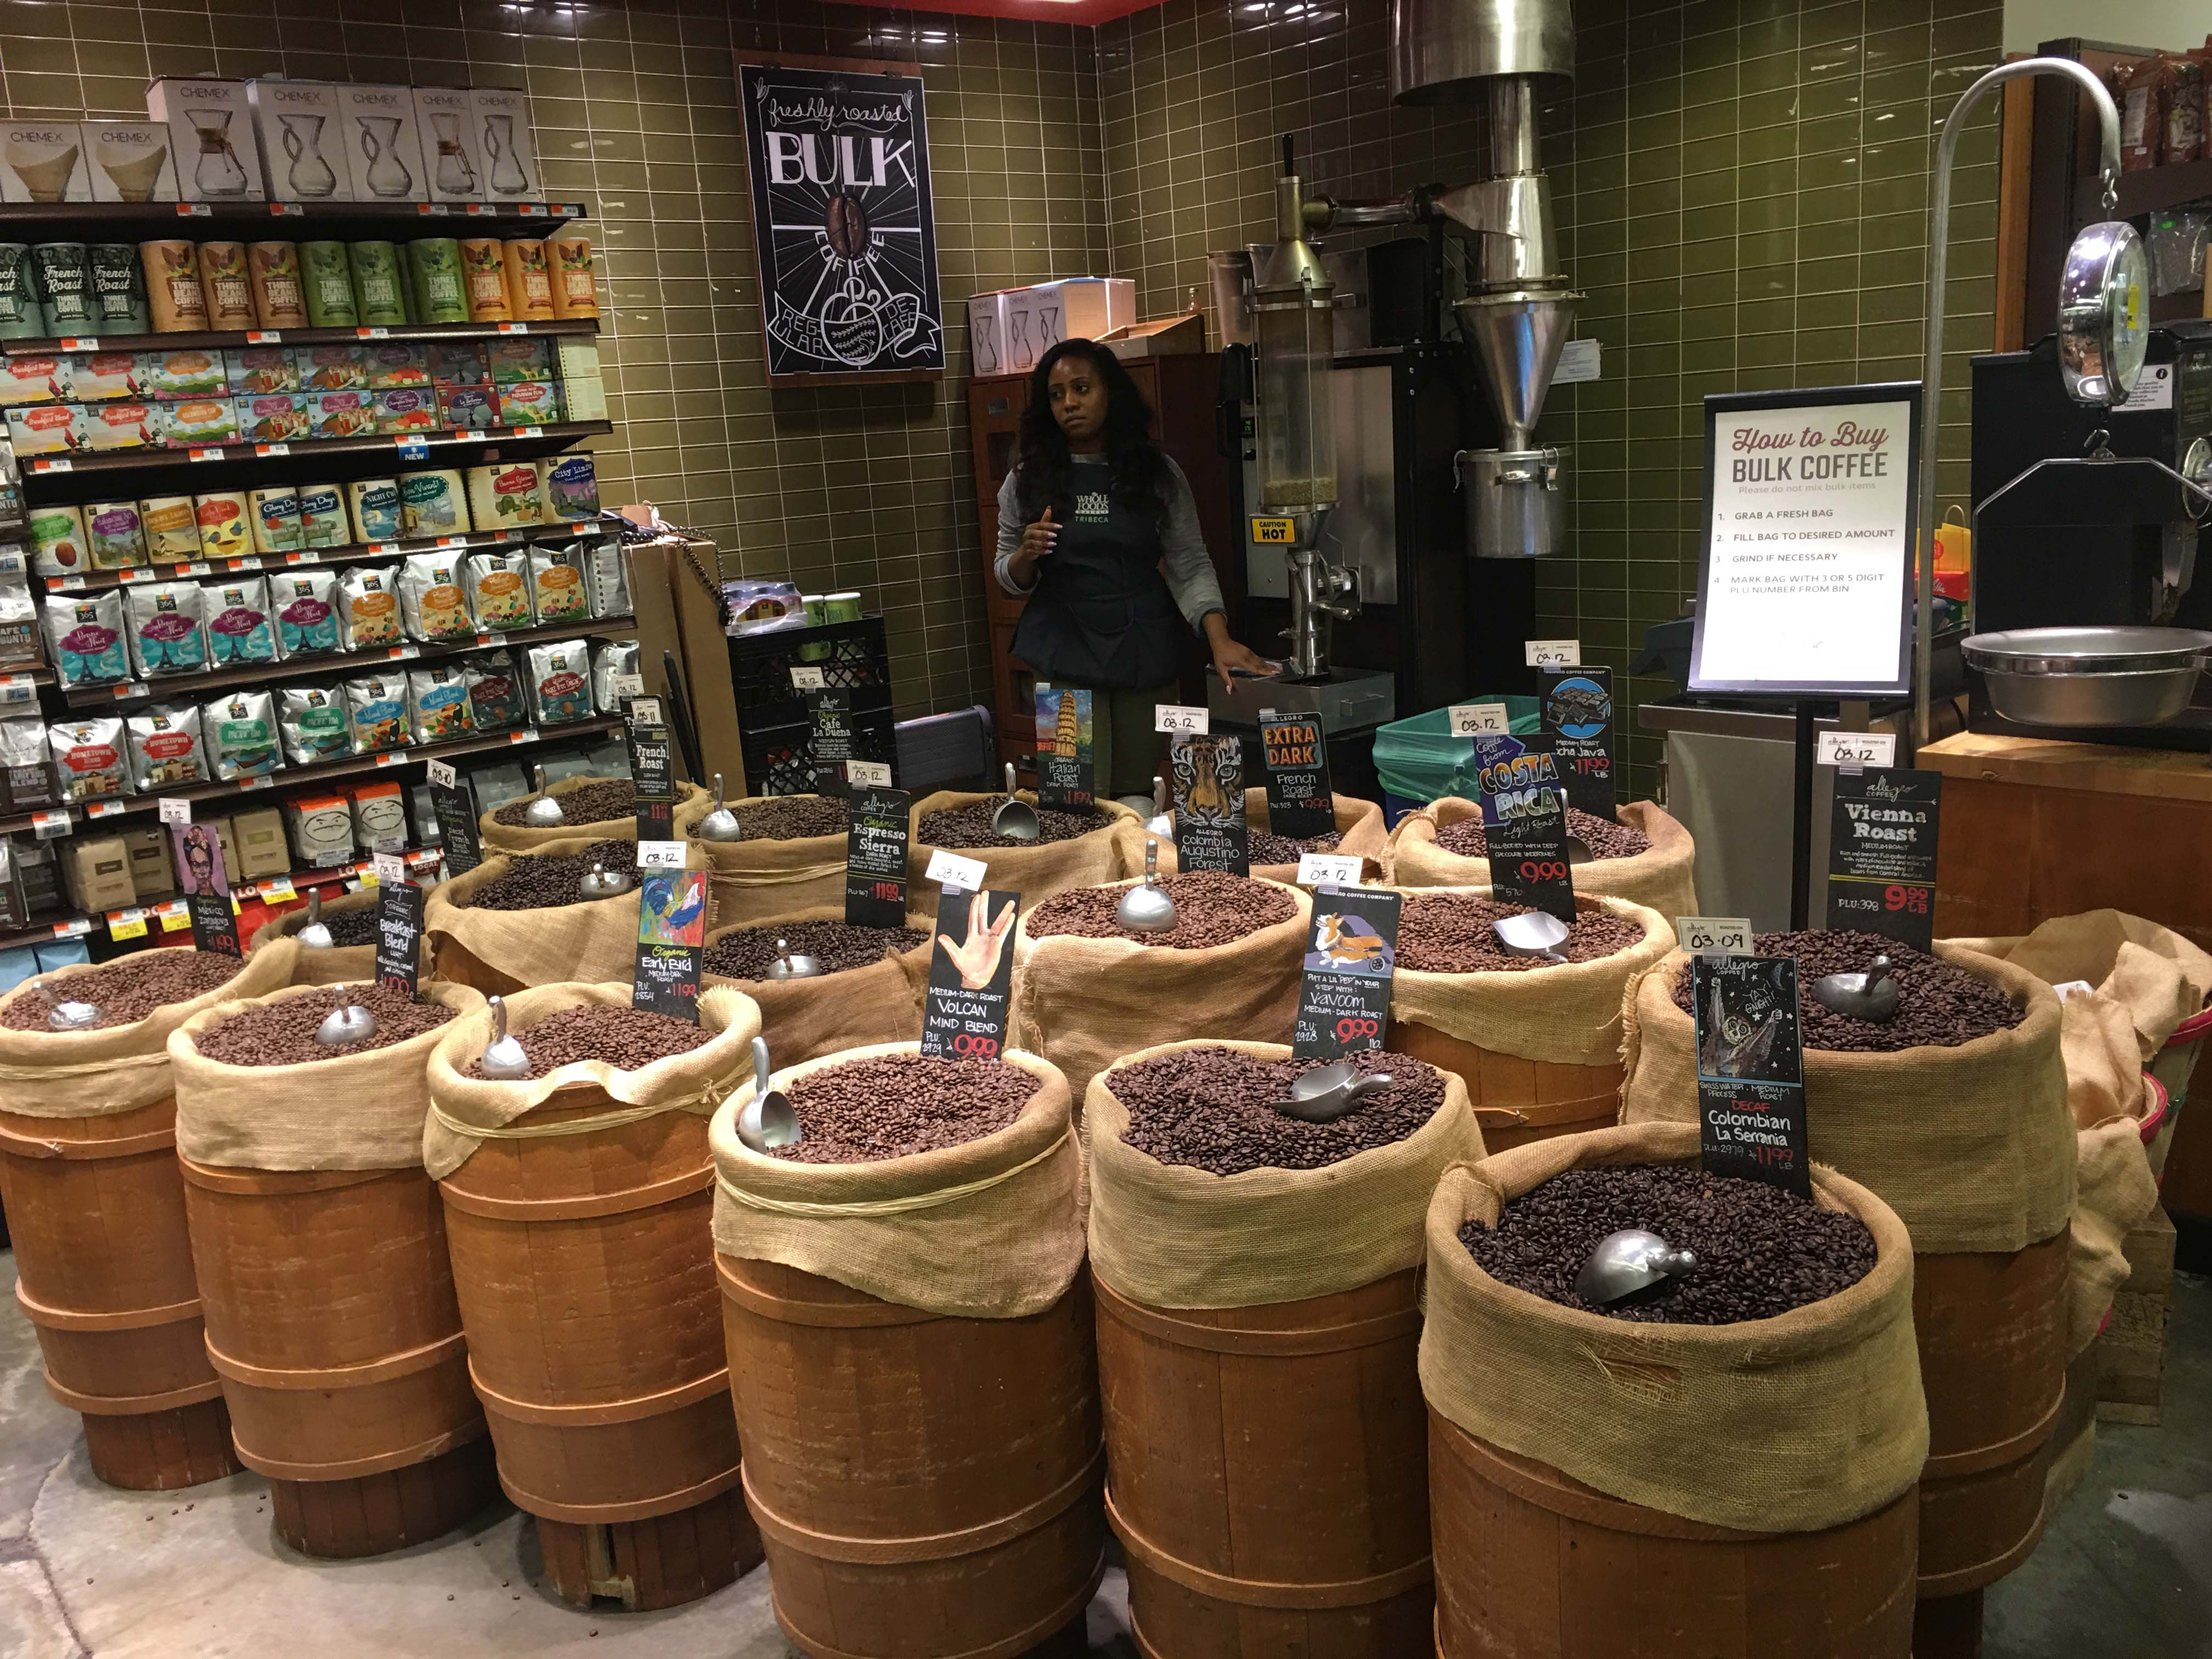 Whole Foods coffee section